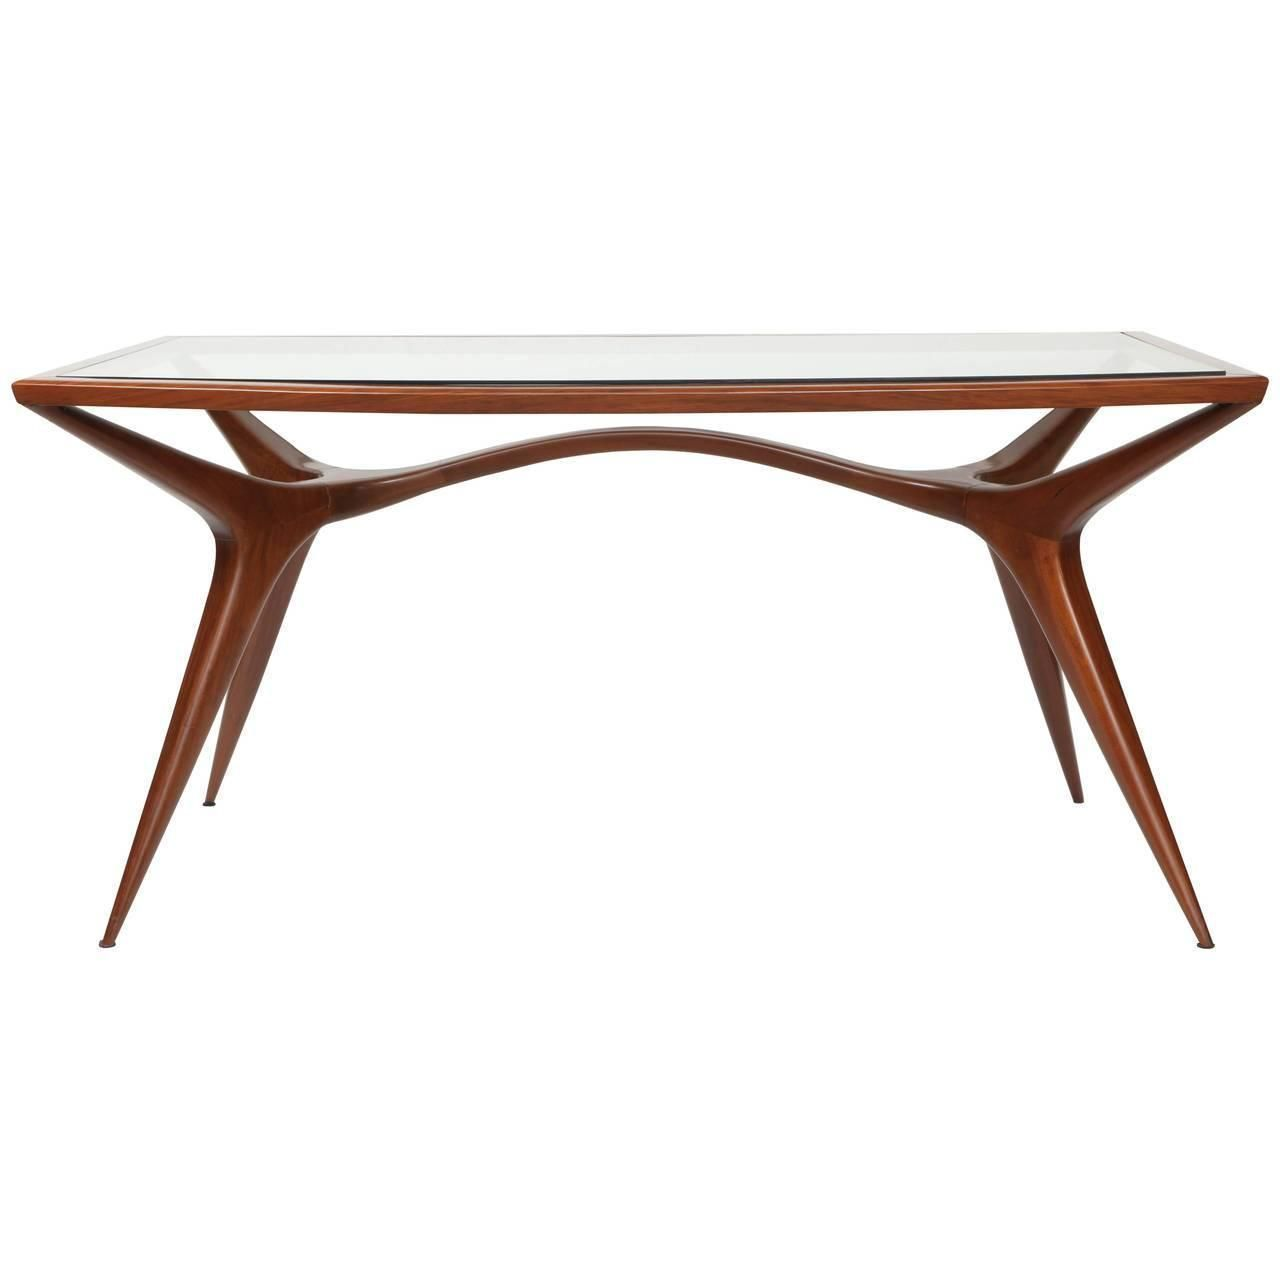 Esstisch Sale Sculptural Dining Table By Giuseppe Scapinelli Möbel 50er 60er